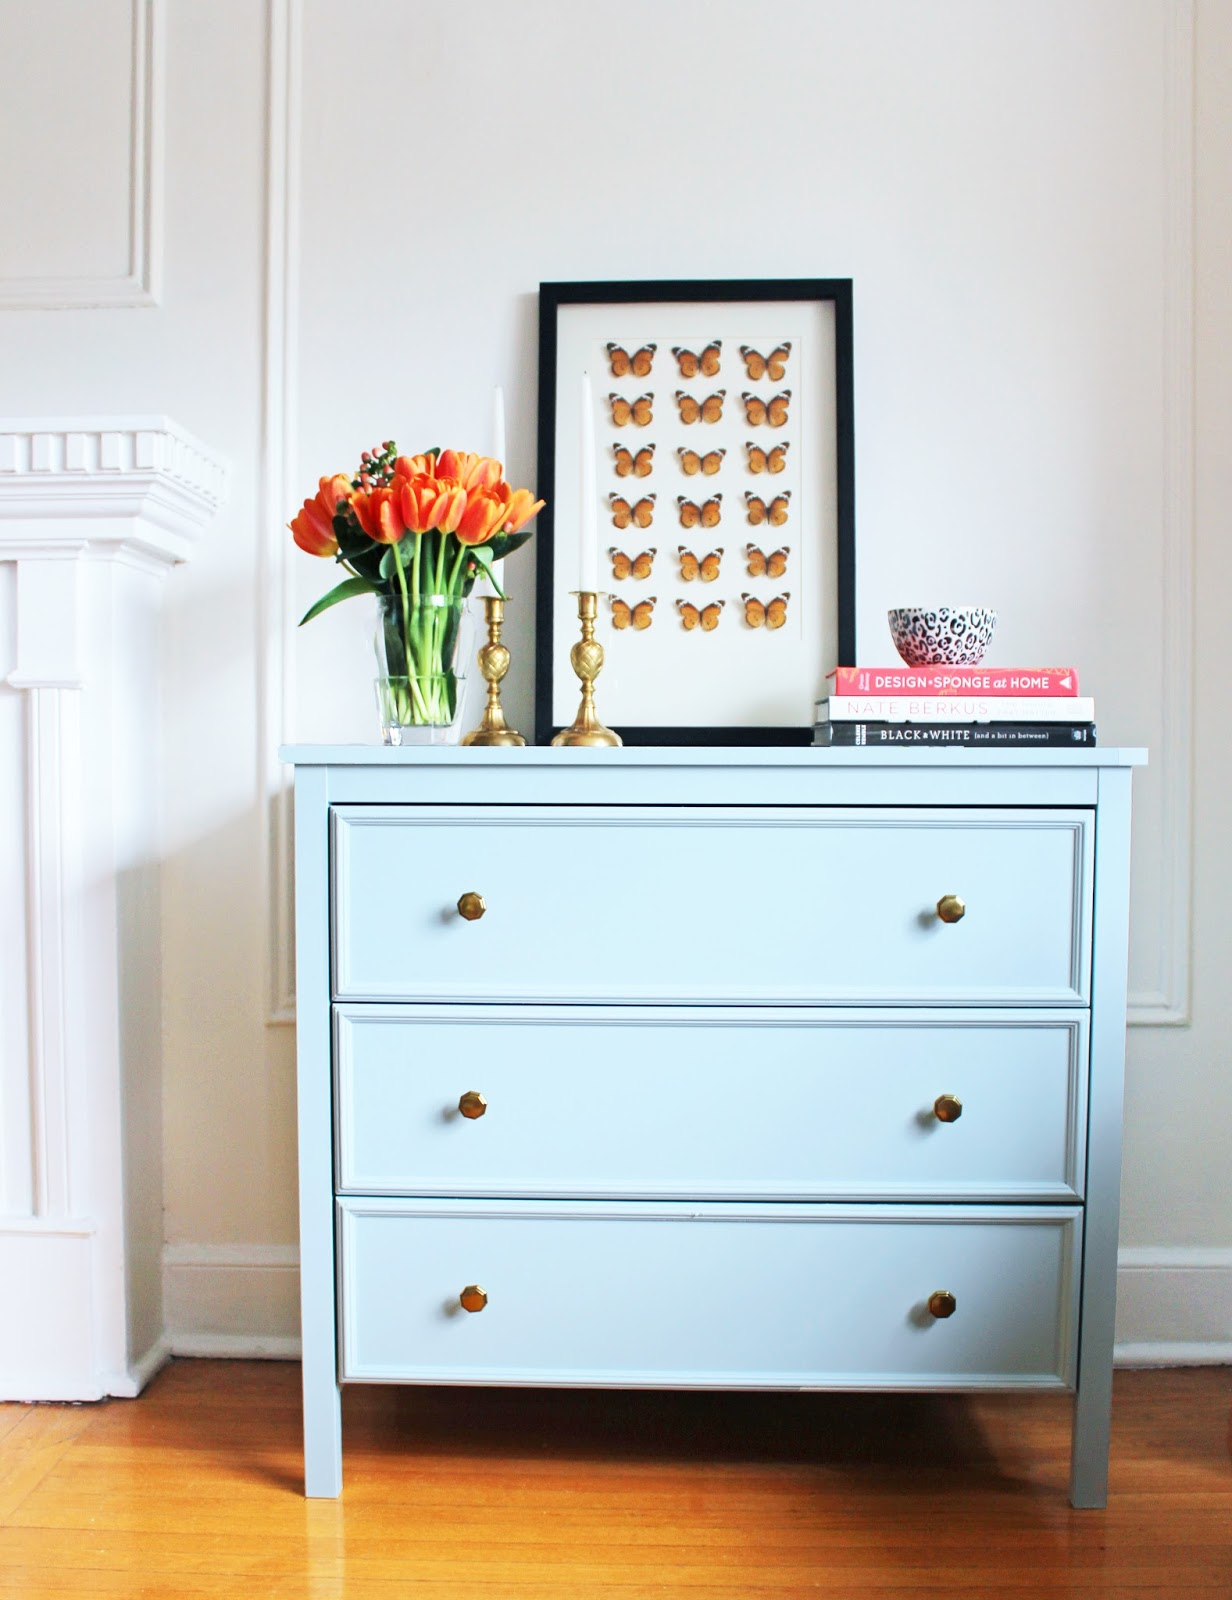 Tiffany leigh interior design diy ikea hack chest of drawers Dresser designs for small space